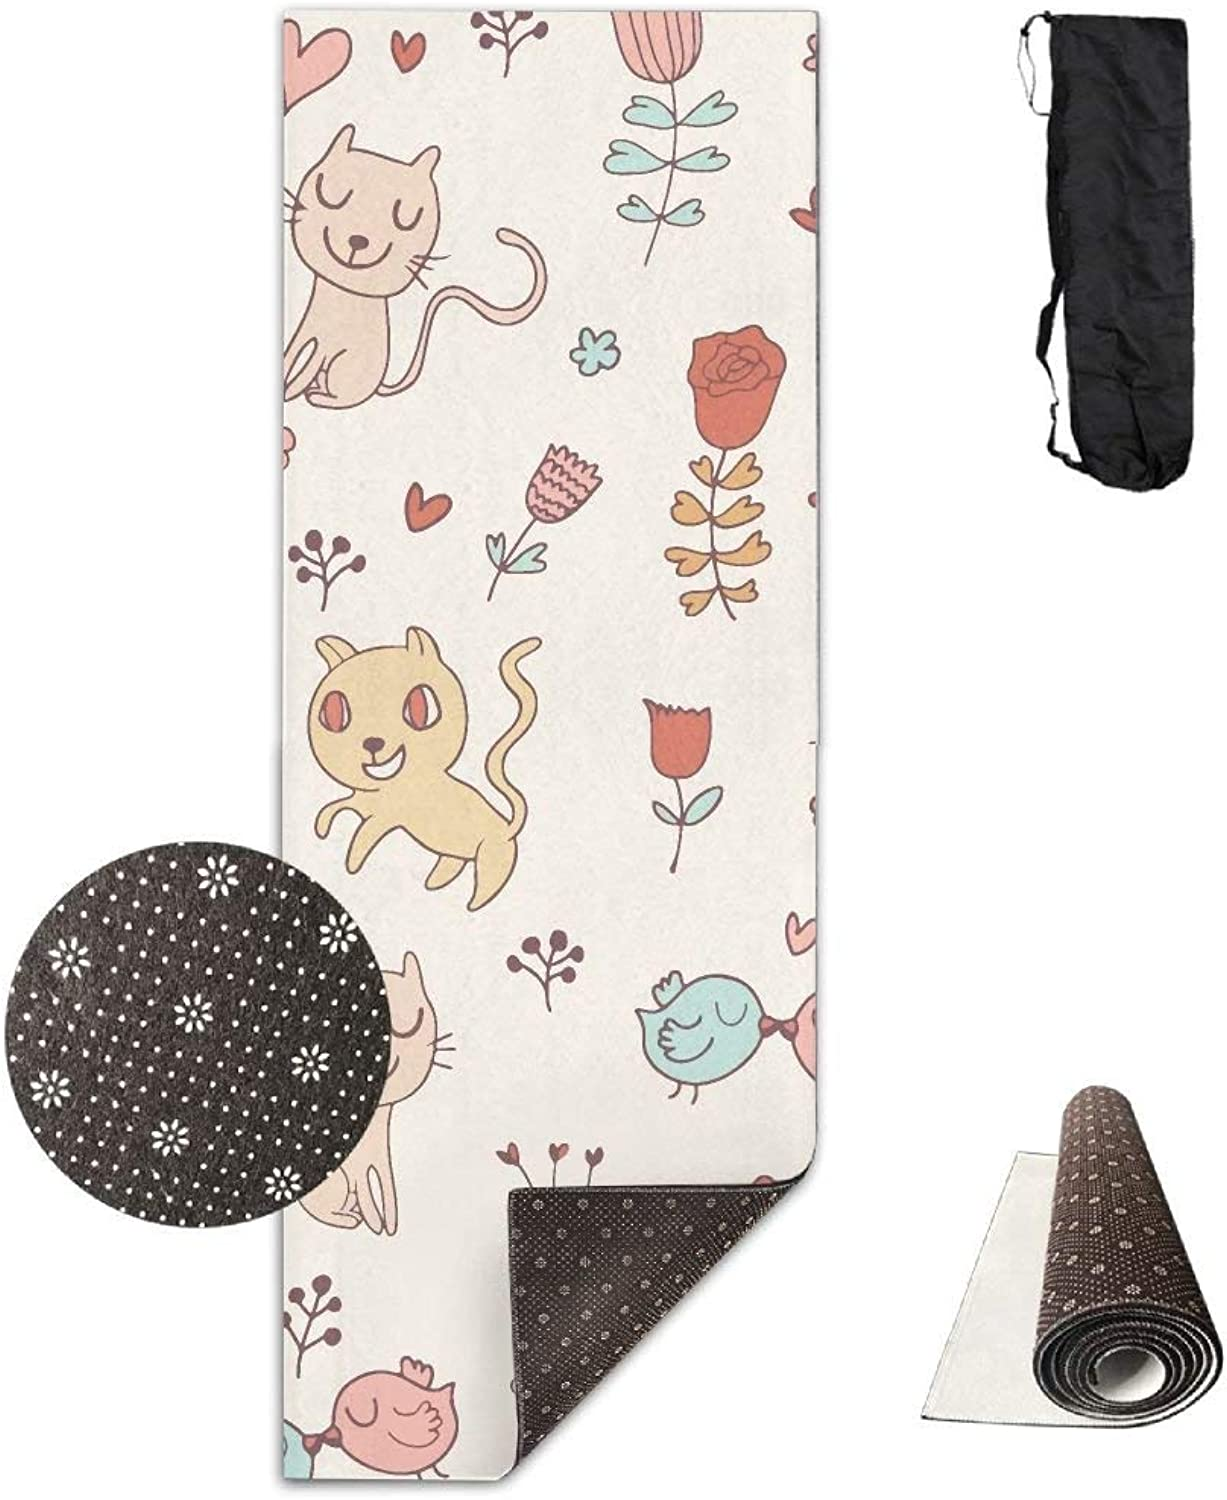 Happy Cat with Flowers Deluxe Yoga Mat Aerobic Exercise Pilates